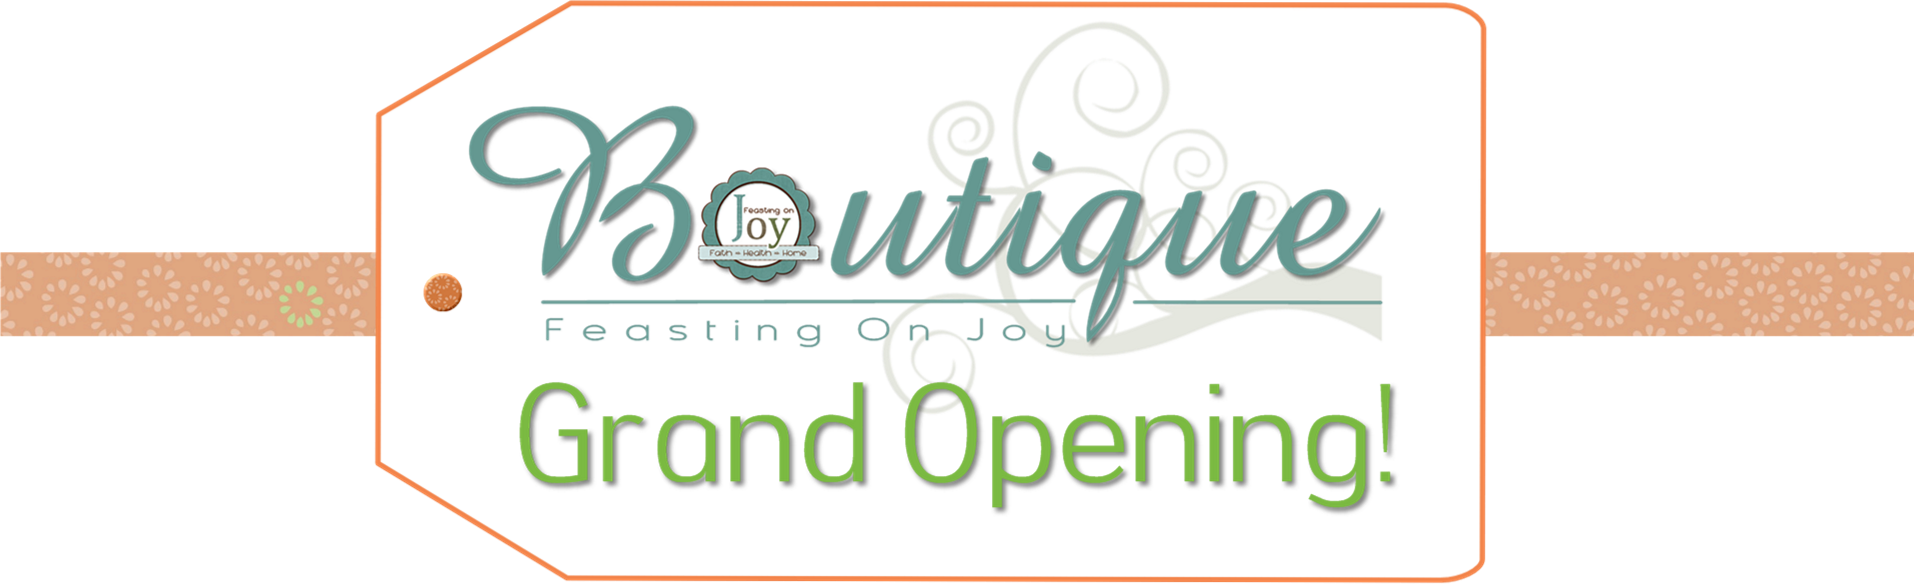 Feasting On Joy Boutique